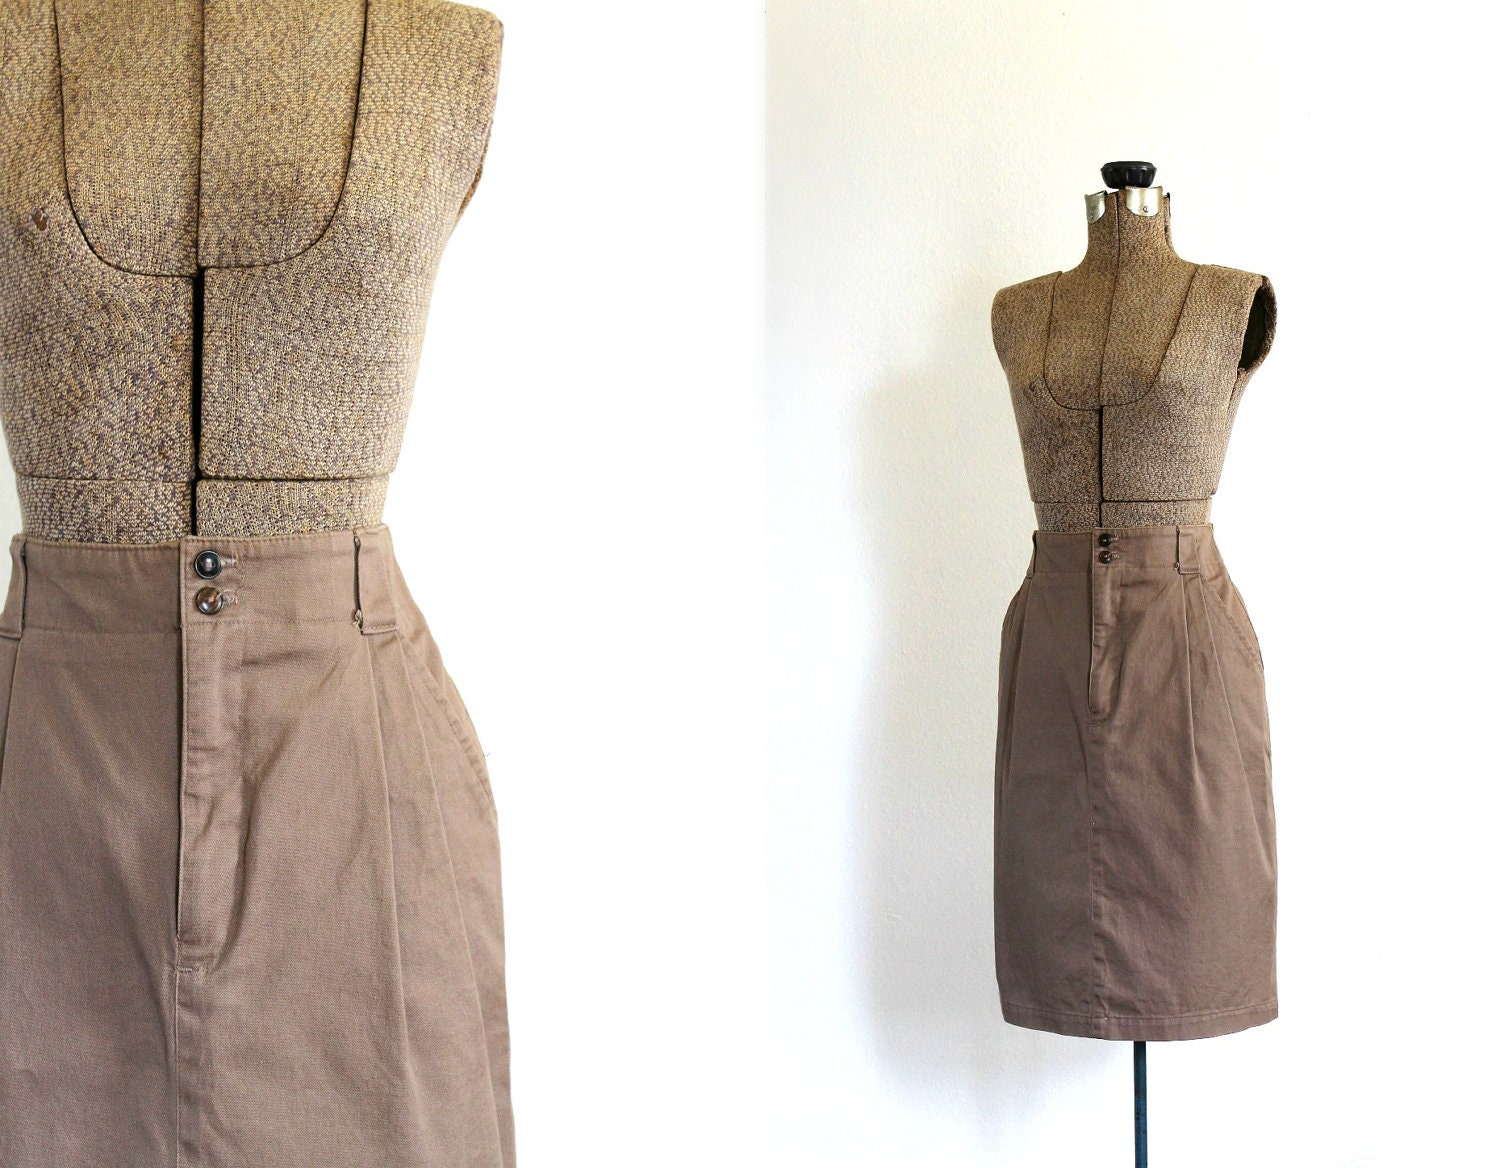 vintage pencil skirt 1980s light brown taupe cotton pencil skirt with pockets / soft fawn - fanciness